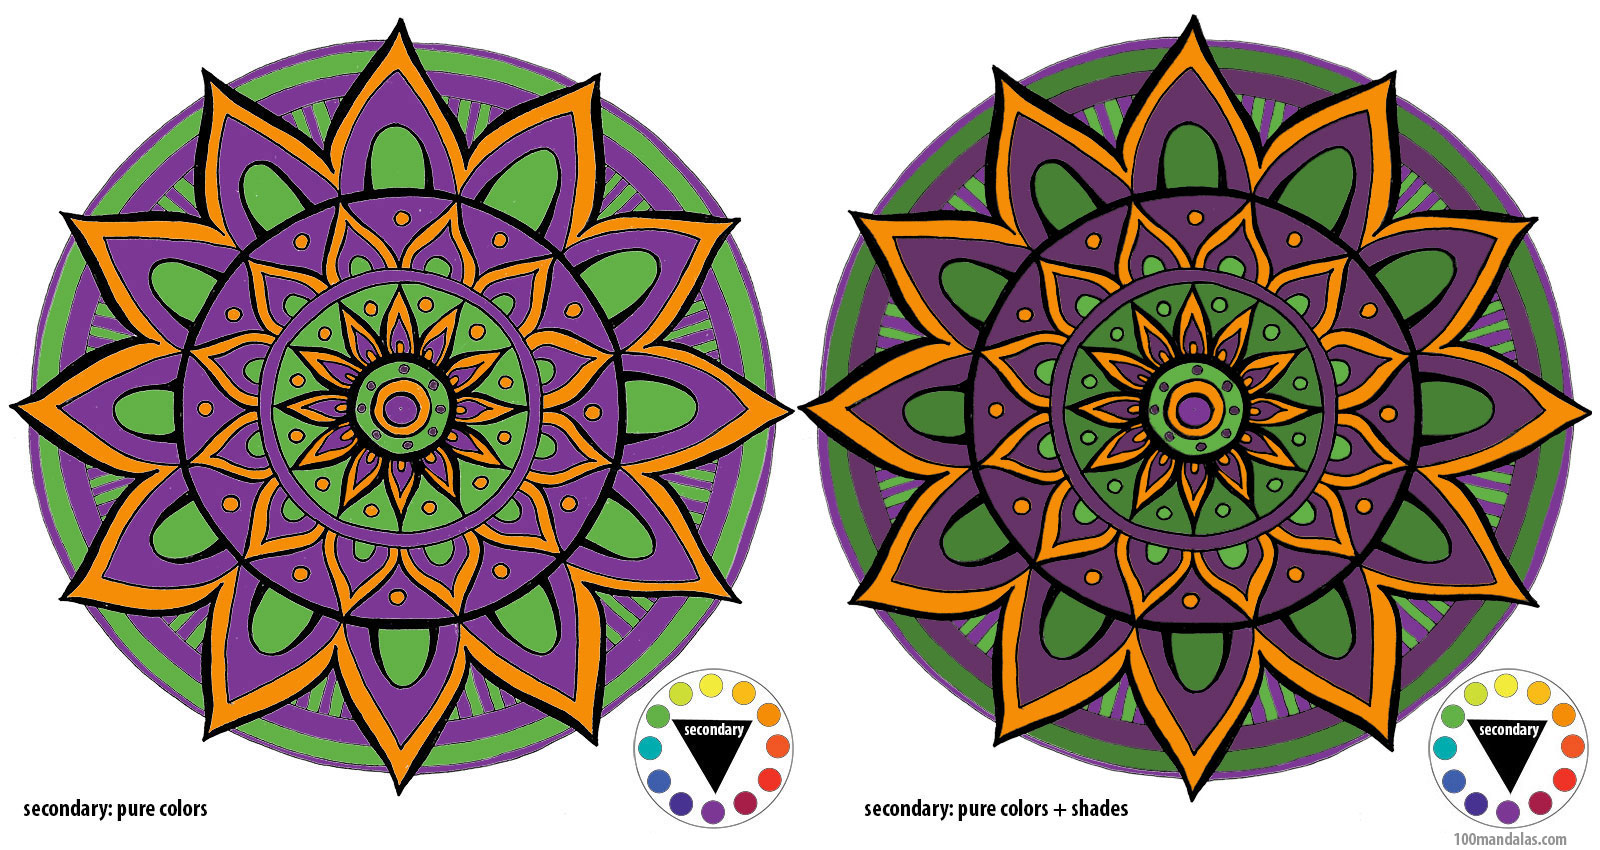 Coloring Mandalas How To Choose Colors To Create Color Harmony How To Draw Mandalas And The 100 Mandalas Challenge With Kathryn Costa